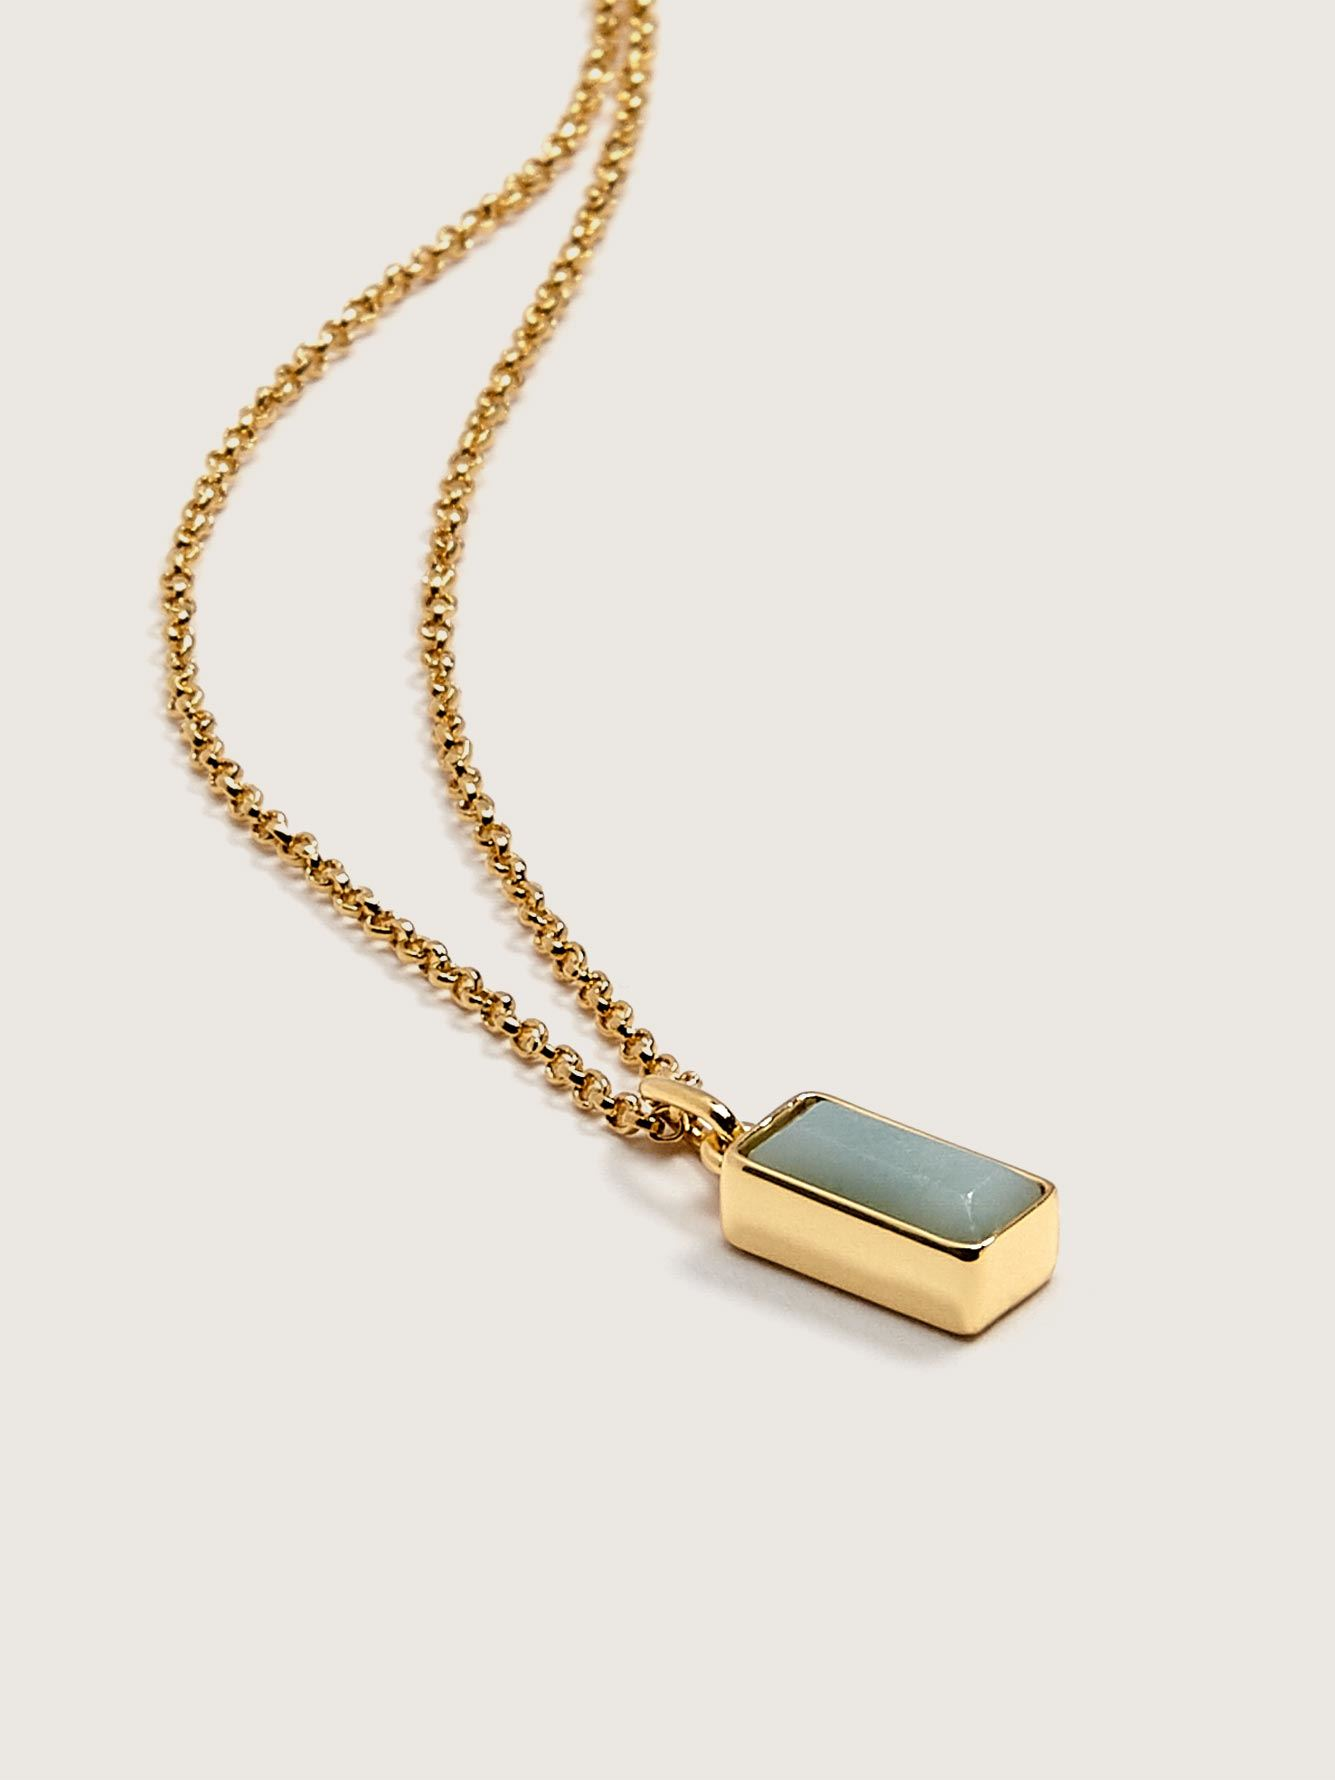 Necklace with Semi-Precious Amazonite Stone Pendant - Addition Elle